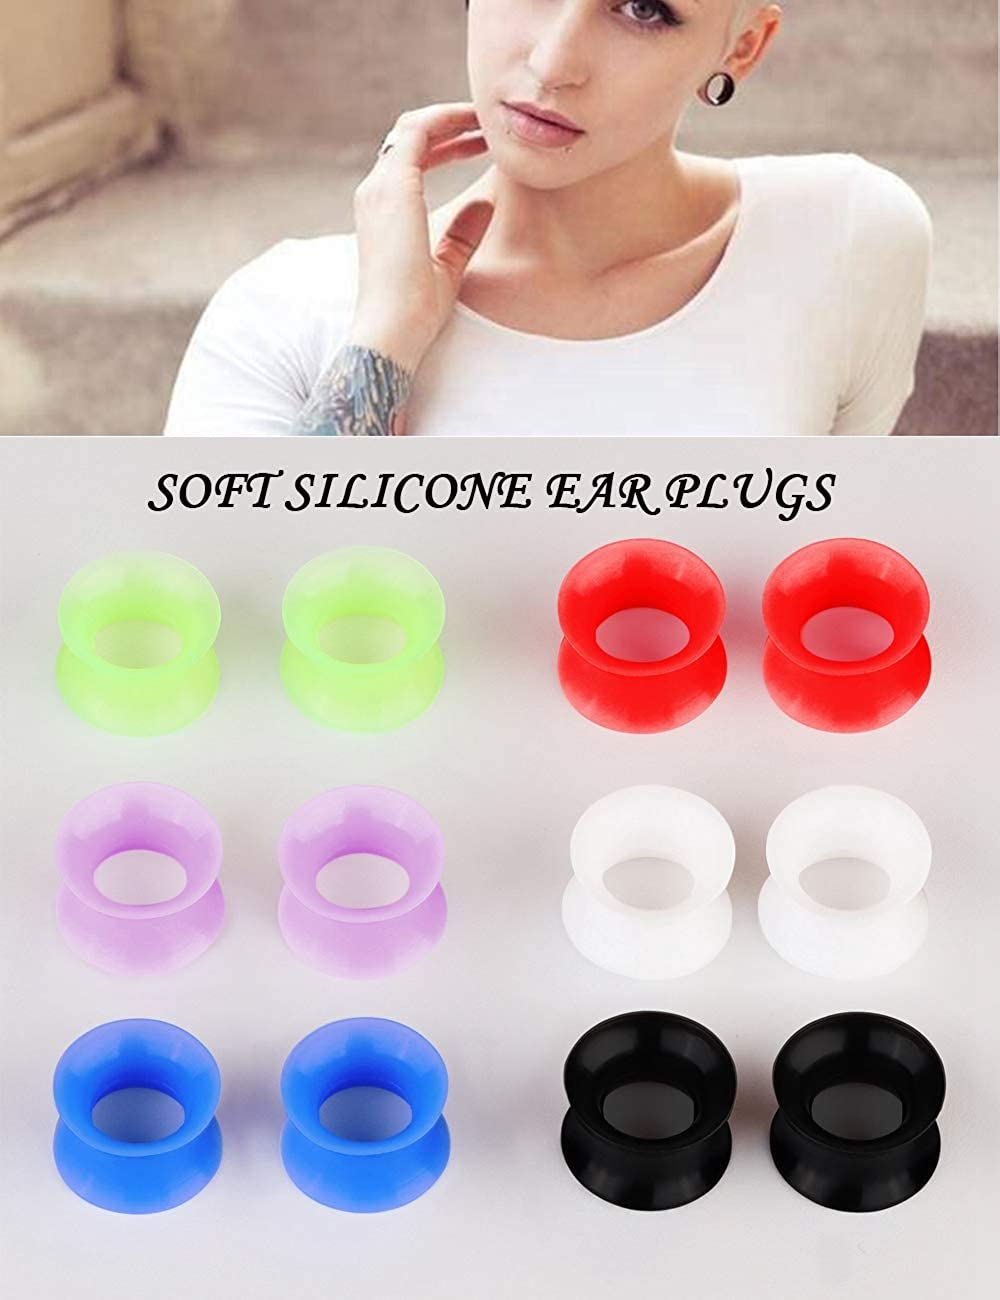 Hanpabum 24PCS Soft Silicone /& Stainless Steel Double Flared Screwed Flexible Ear Plug Tunnel Stretcher Expander Ear Piercing Jewelry Gauges 0G-1//2